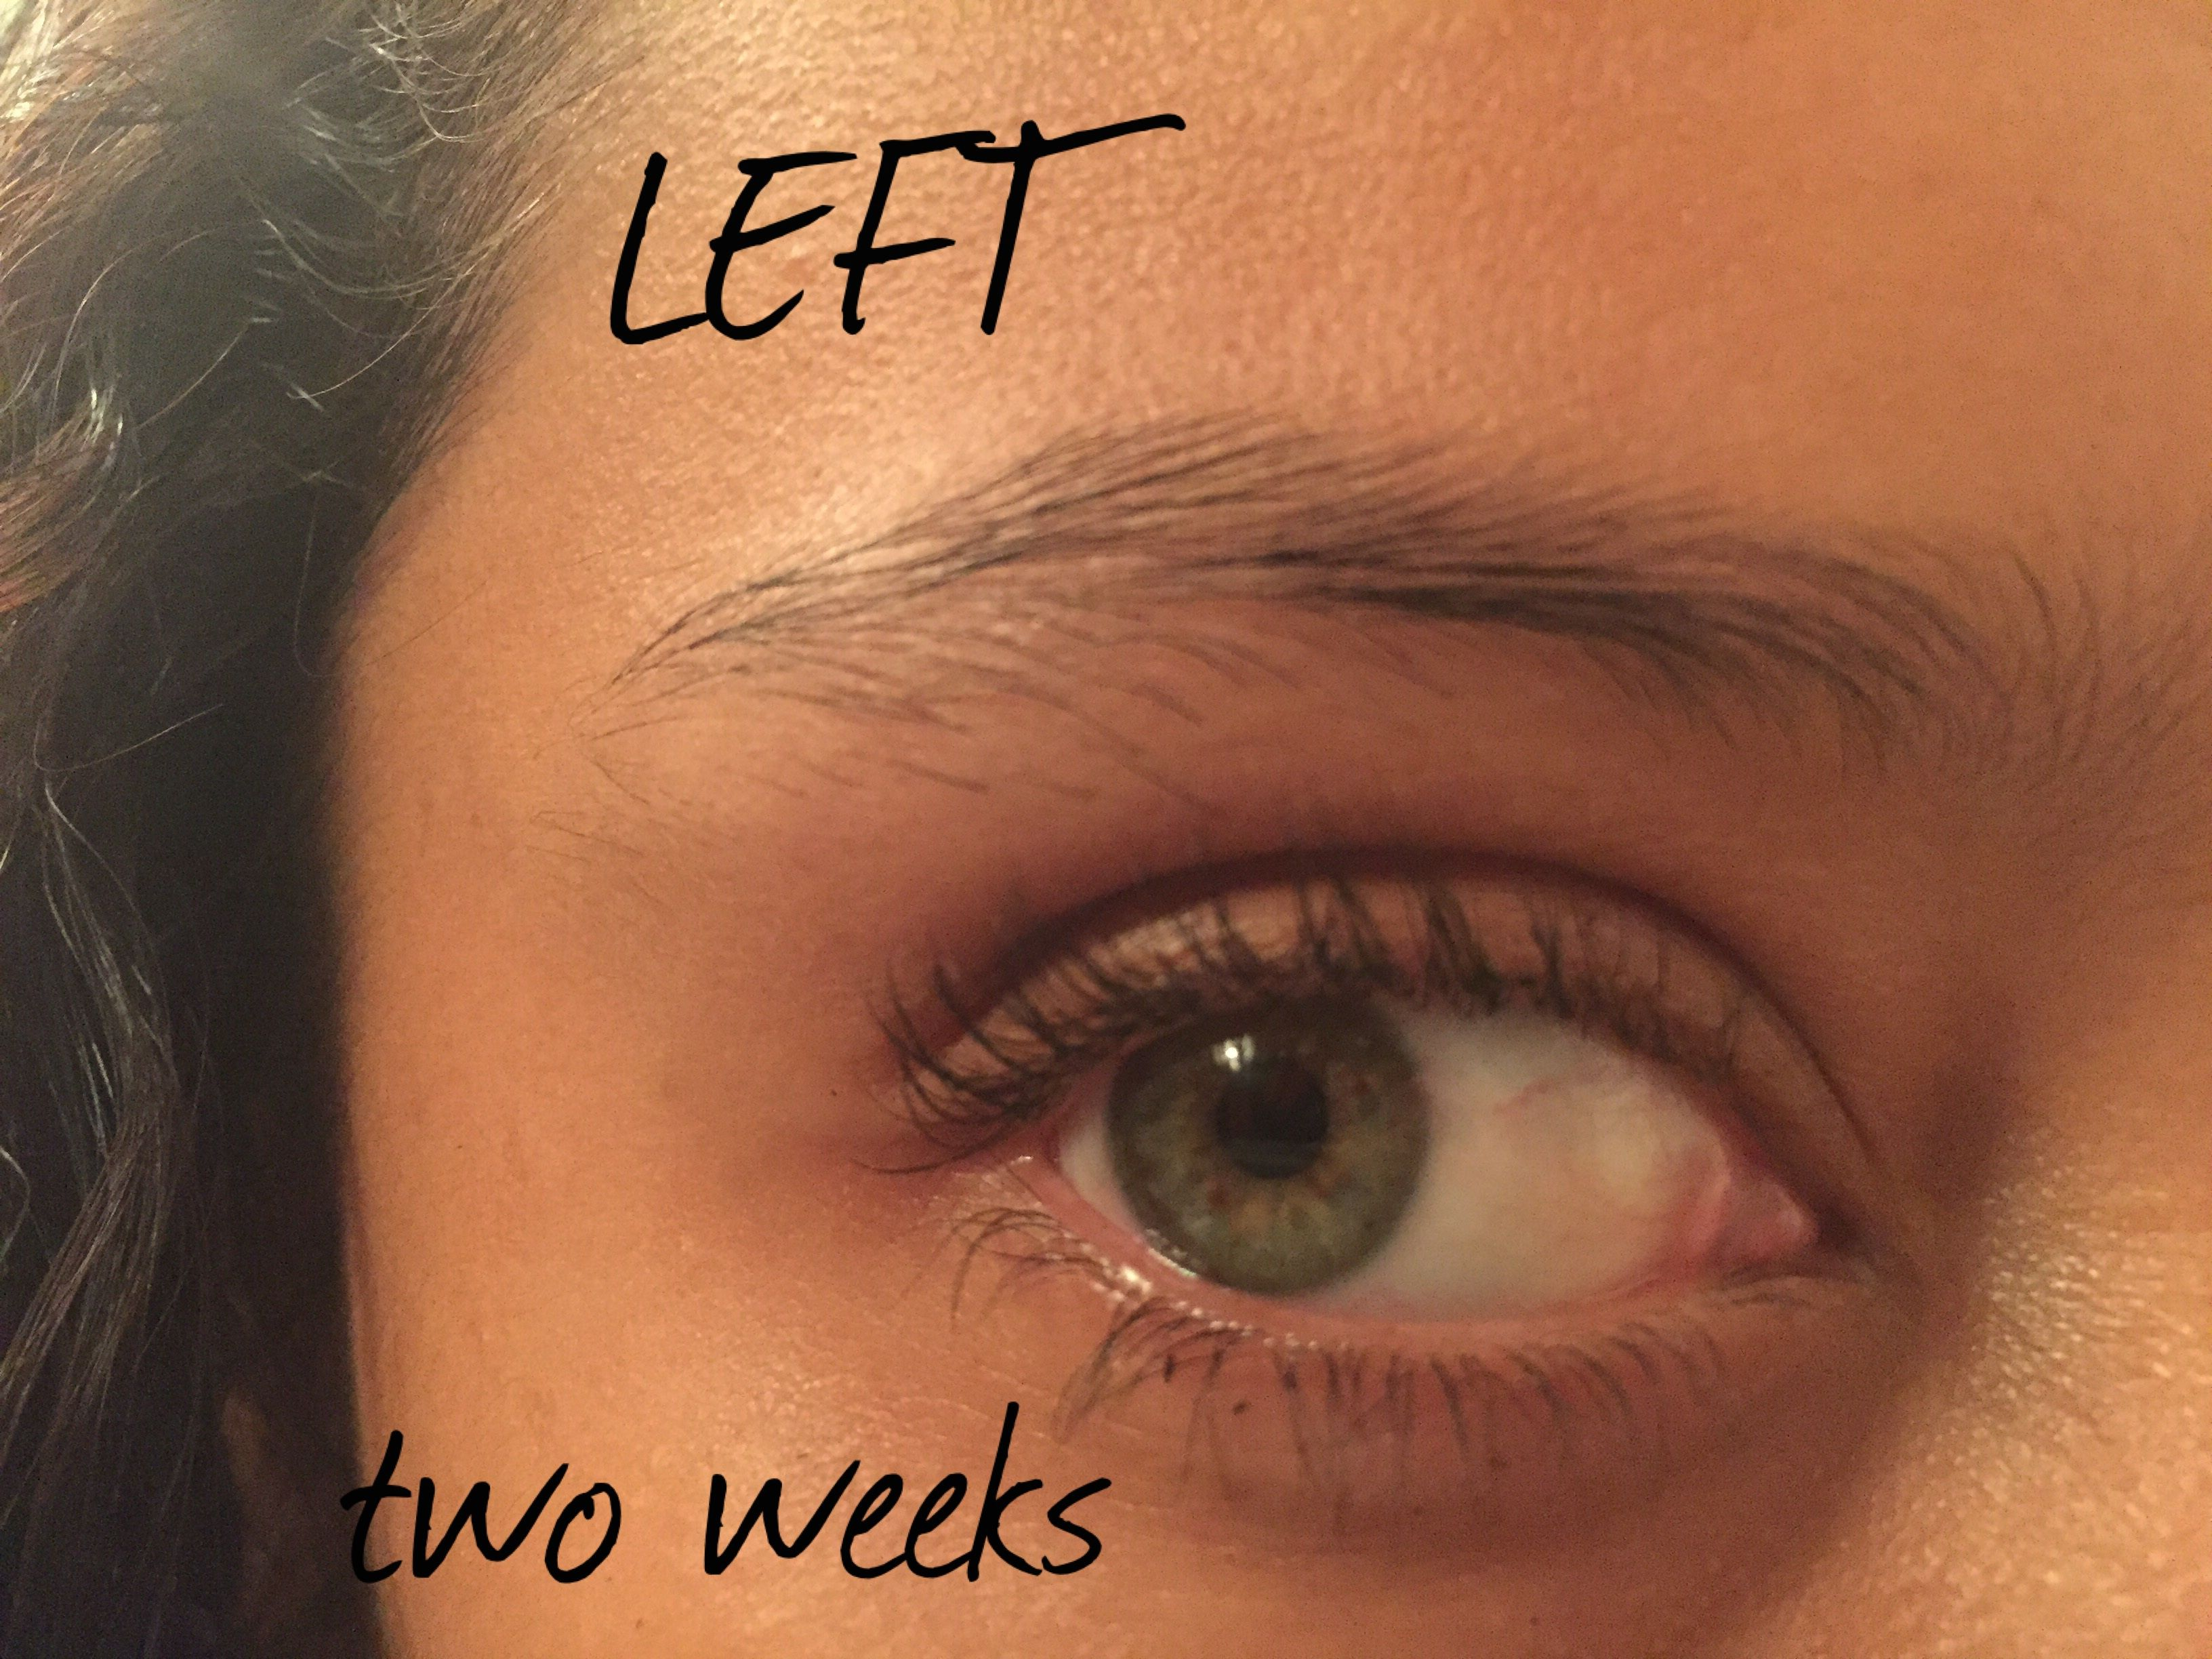 This Is The Right Eyebrowpost Up After Two Weeks This Past Week